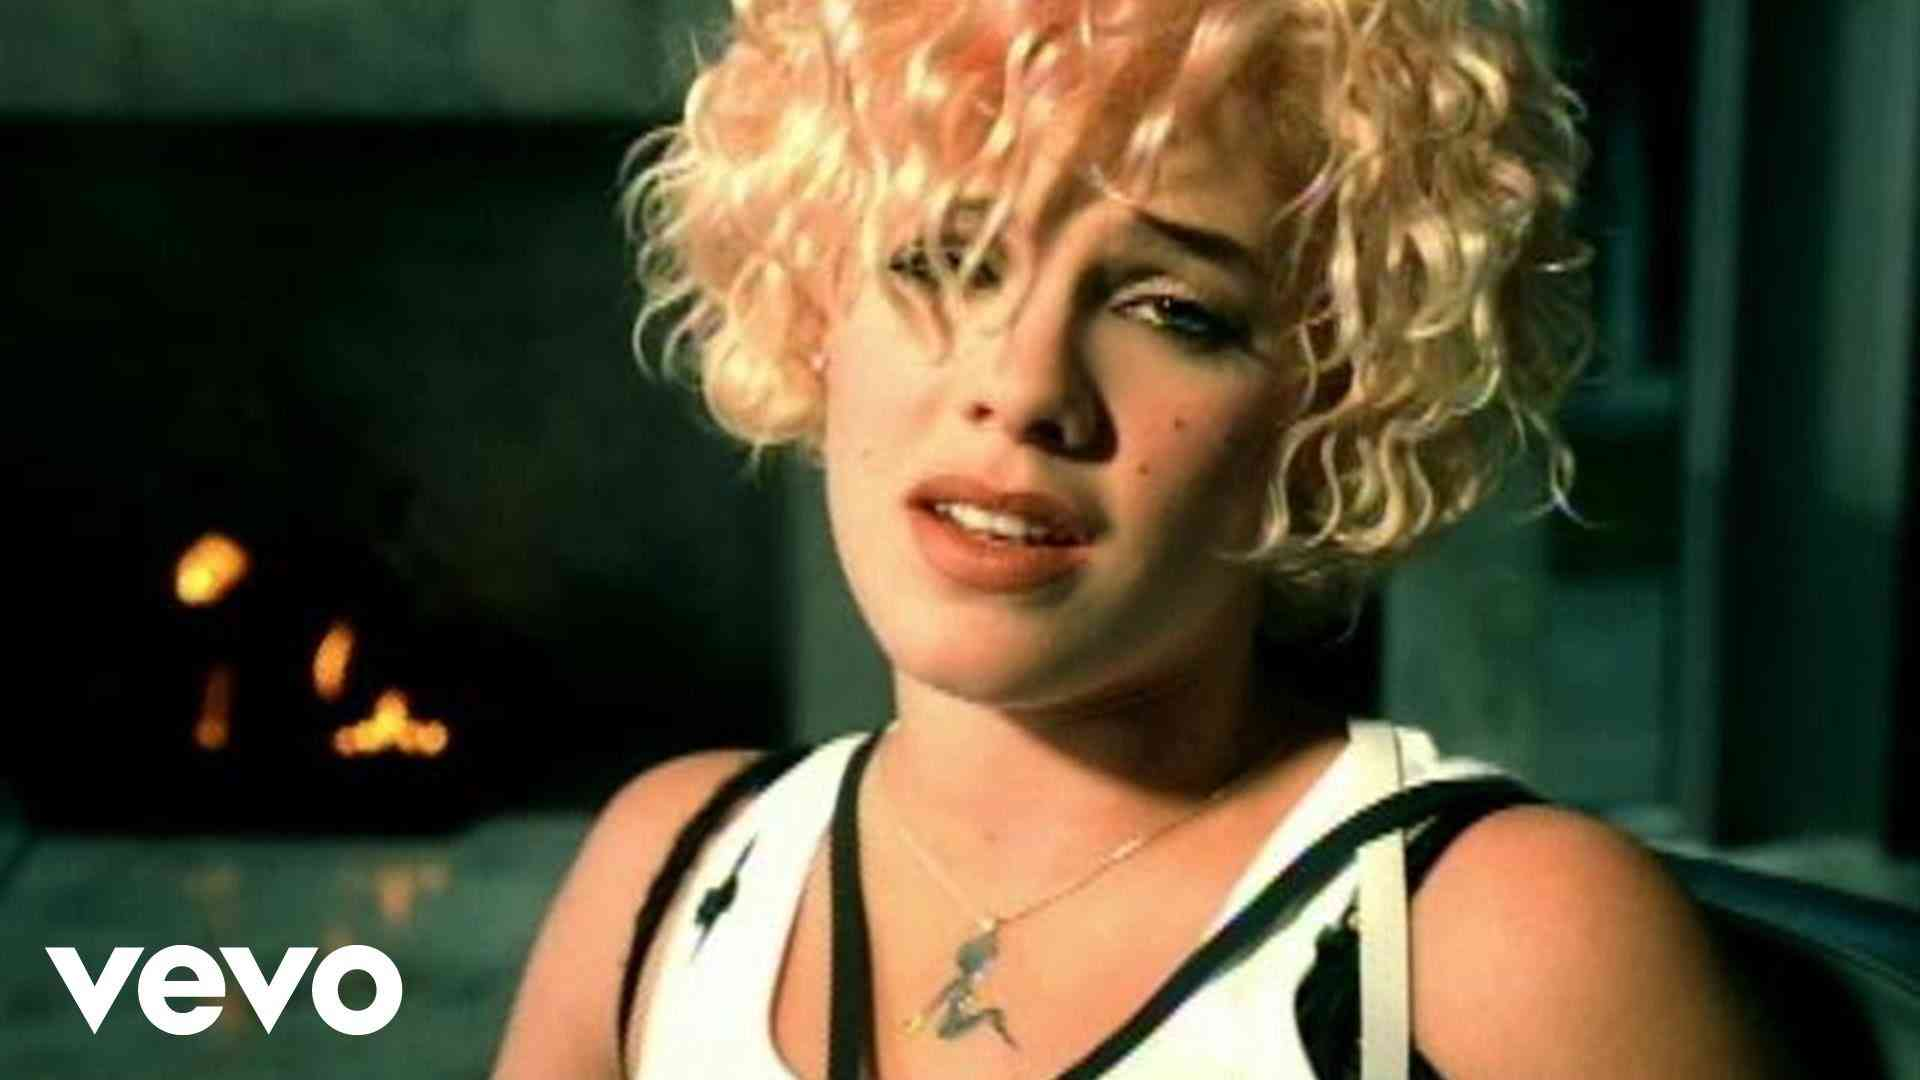 P!nk - Don't Let Me Get Me - YouTube